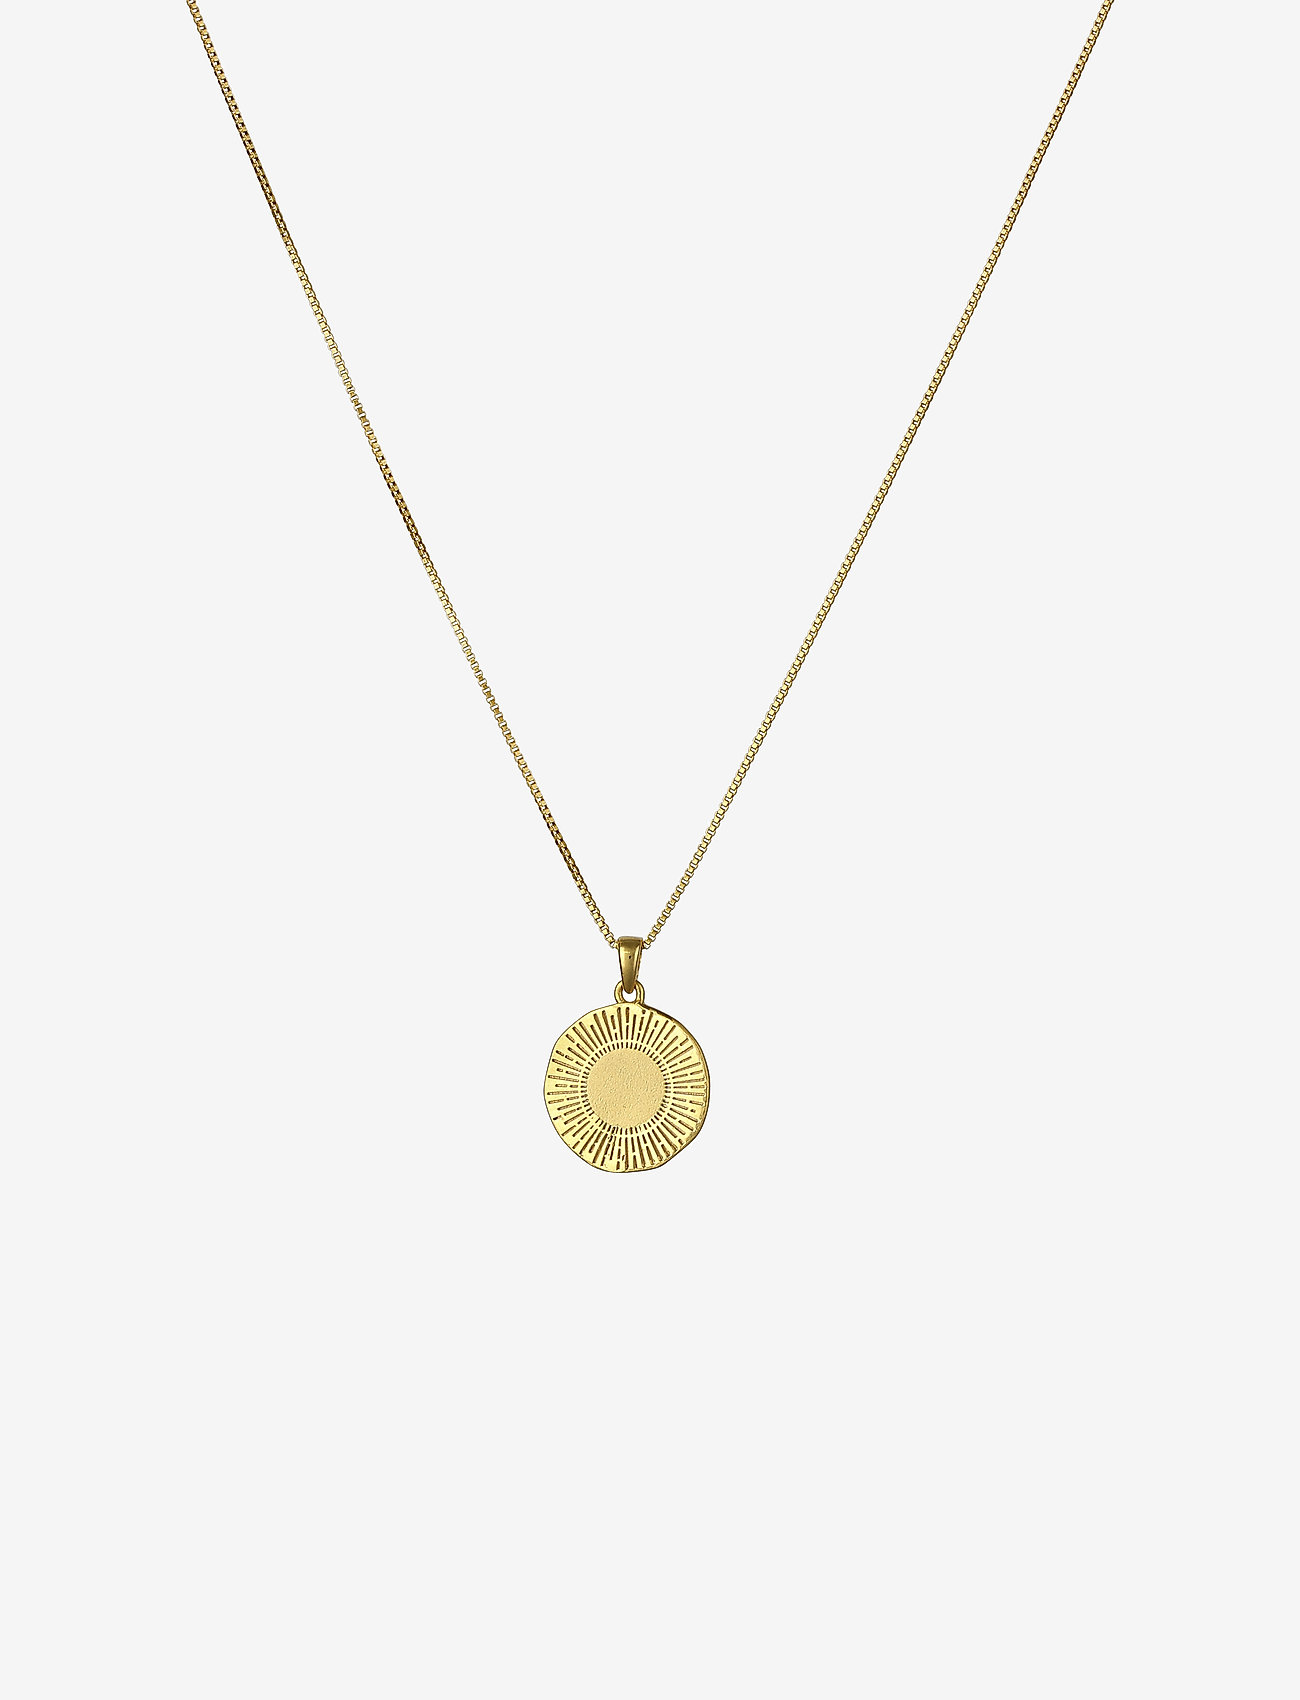 Sunburst Round Pendant Necklace Gold Gold 63 20 Syster P Boozt Com